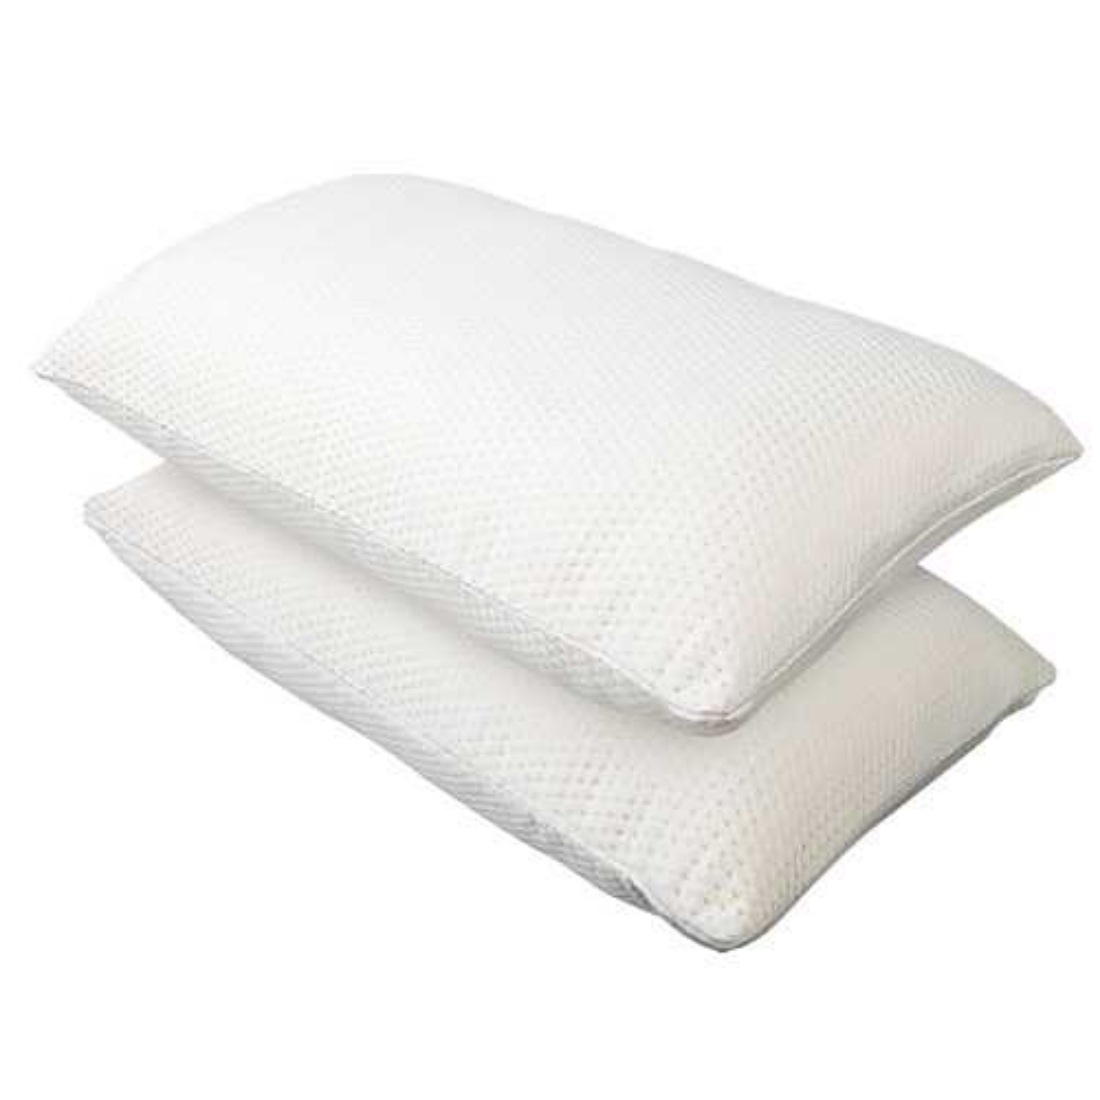 Set of 2 Memory Foam Pillows Contour Pillow